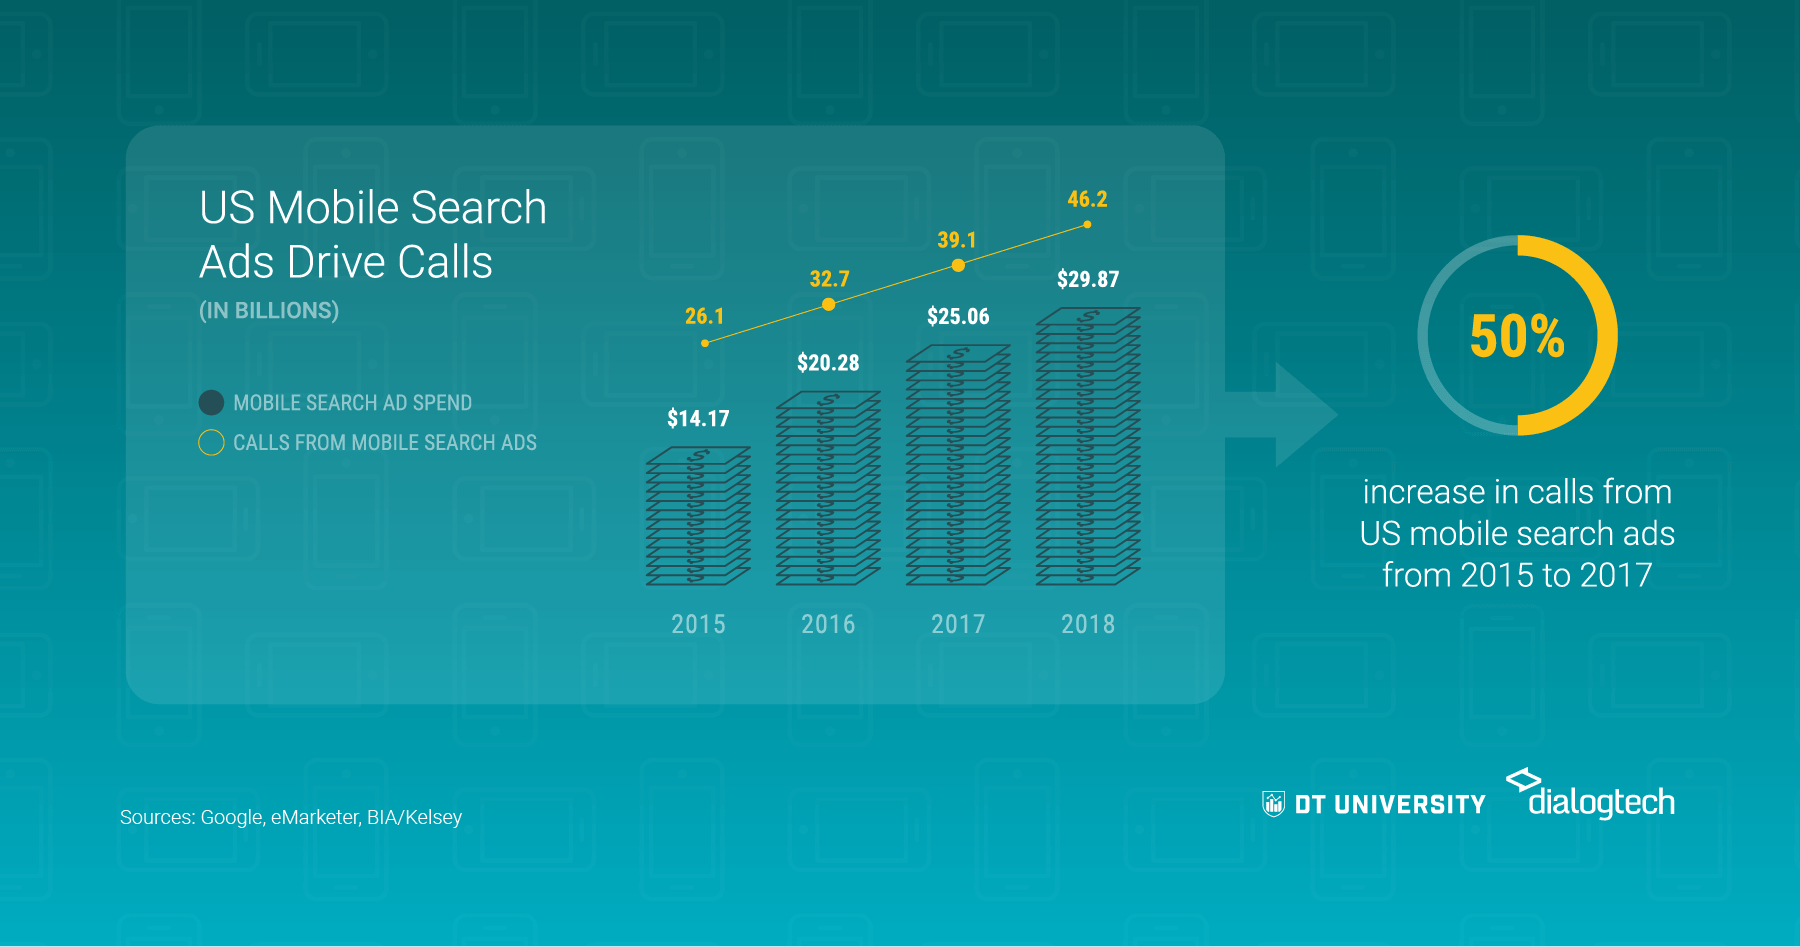 US mobile search ads drive calls